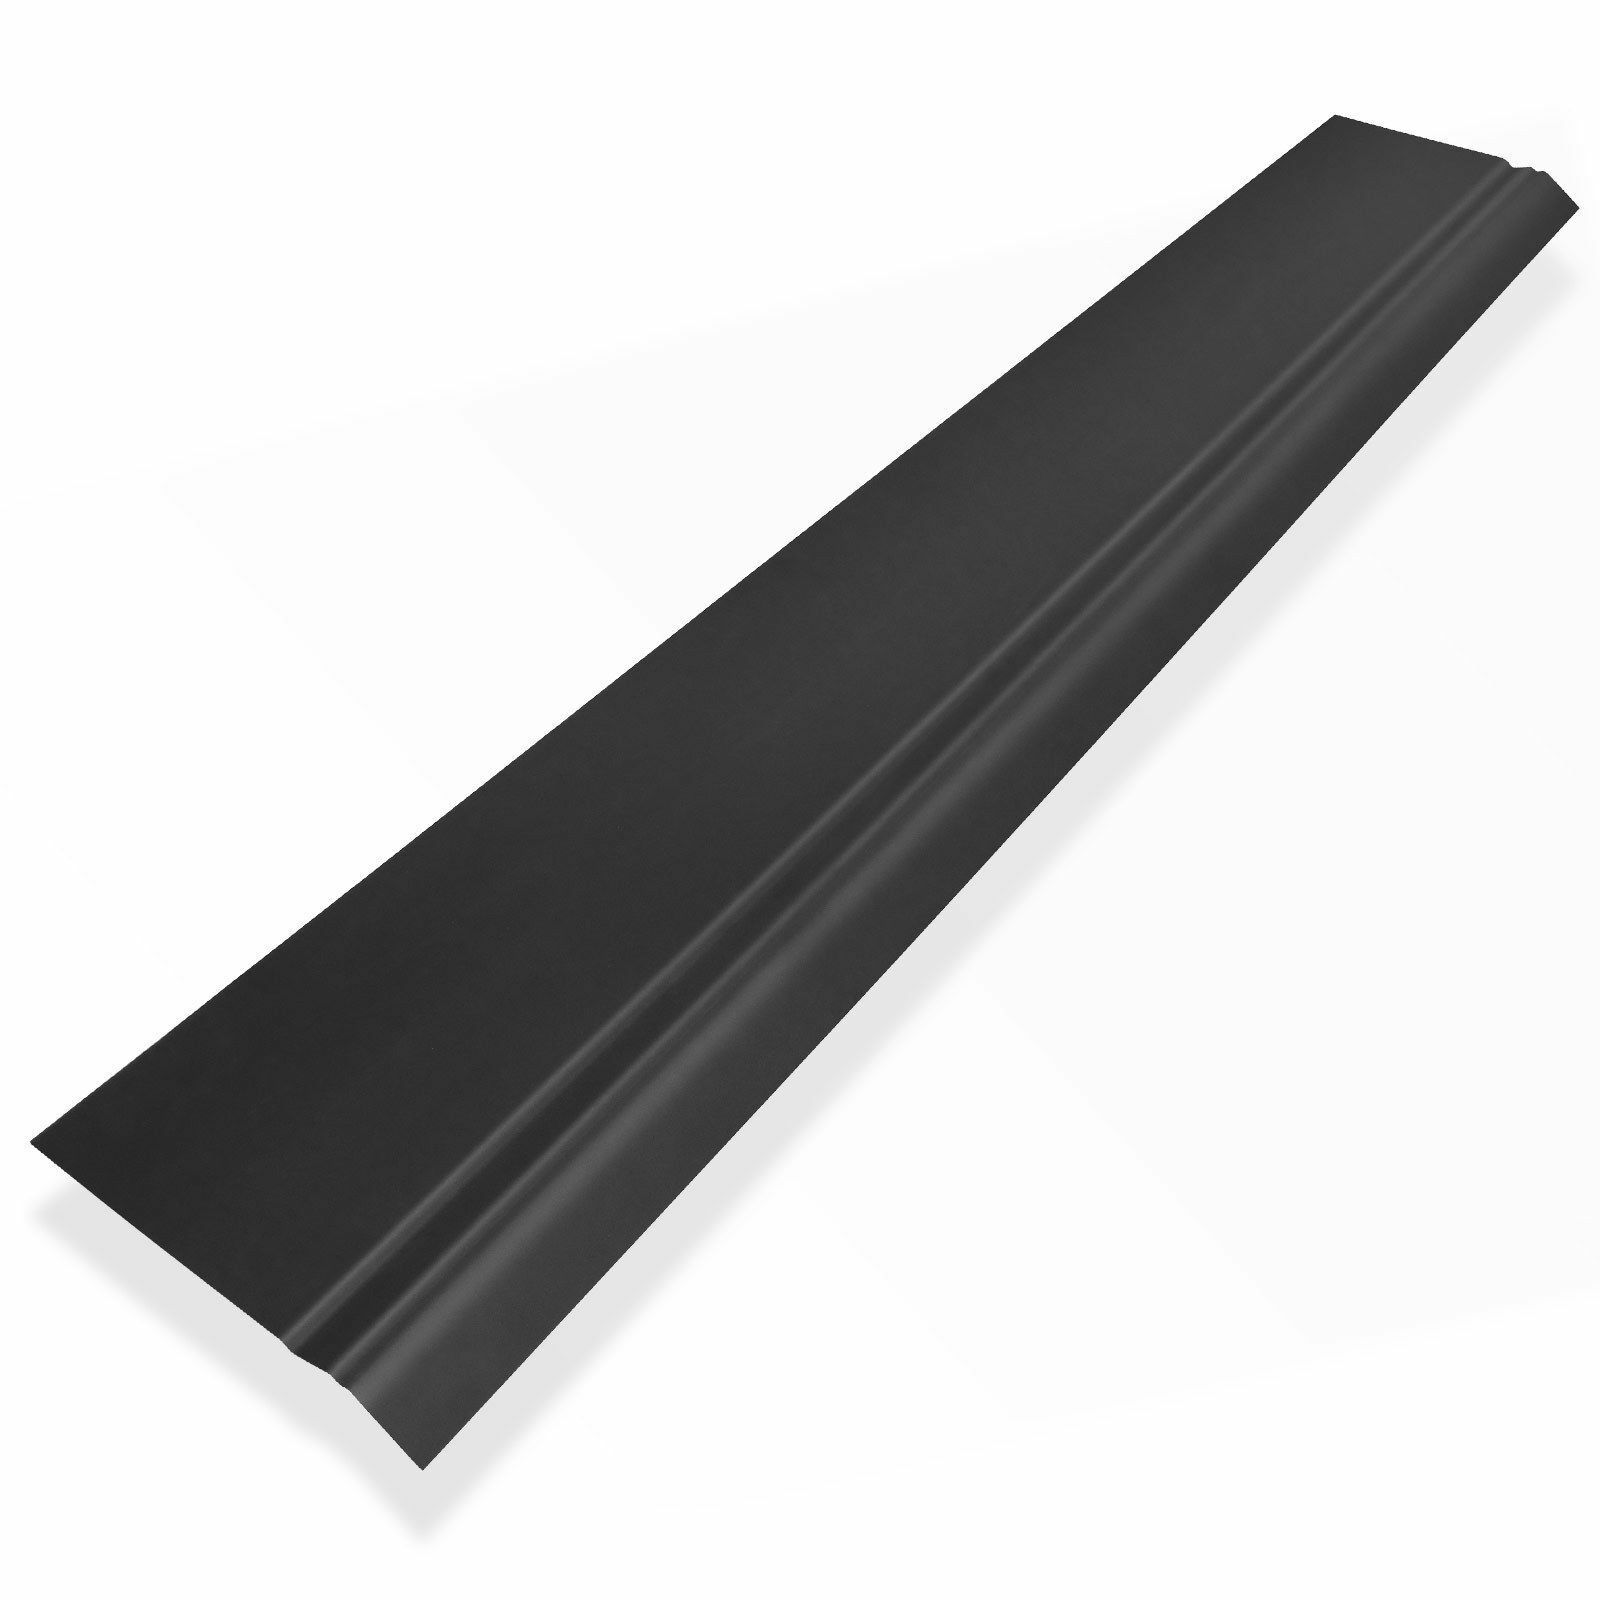 Felt Support Tray Eaves Amp Felt Protector 1 5m Lengths